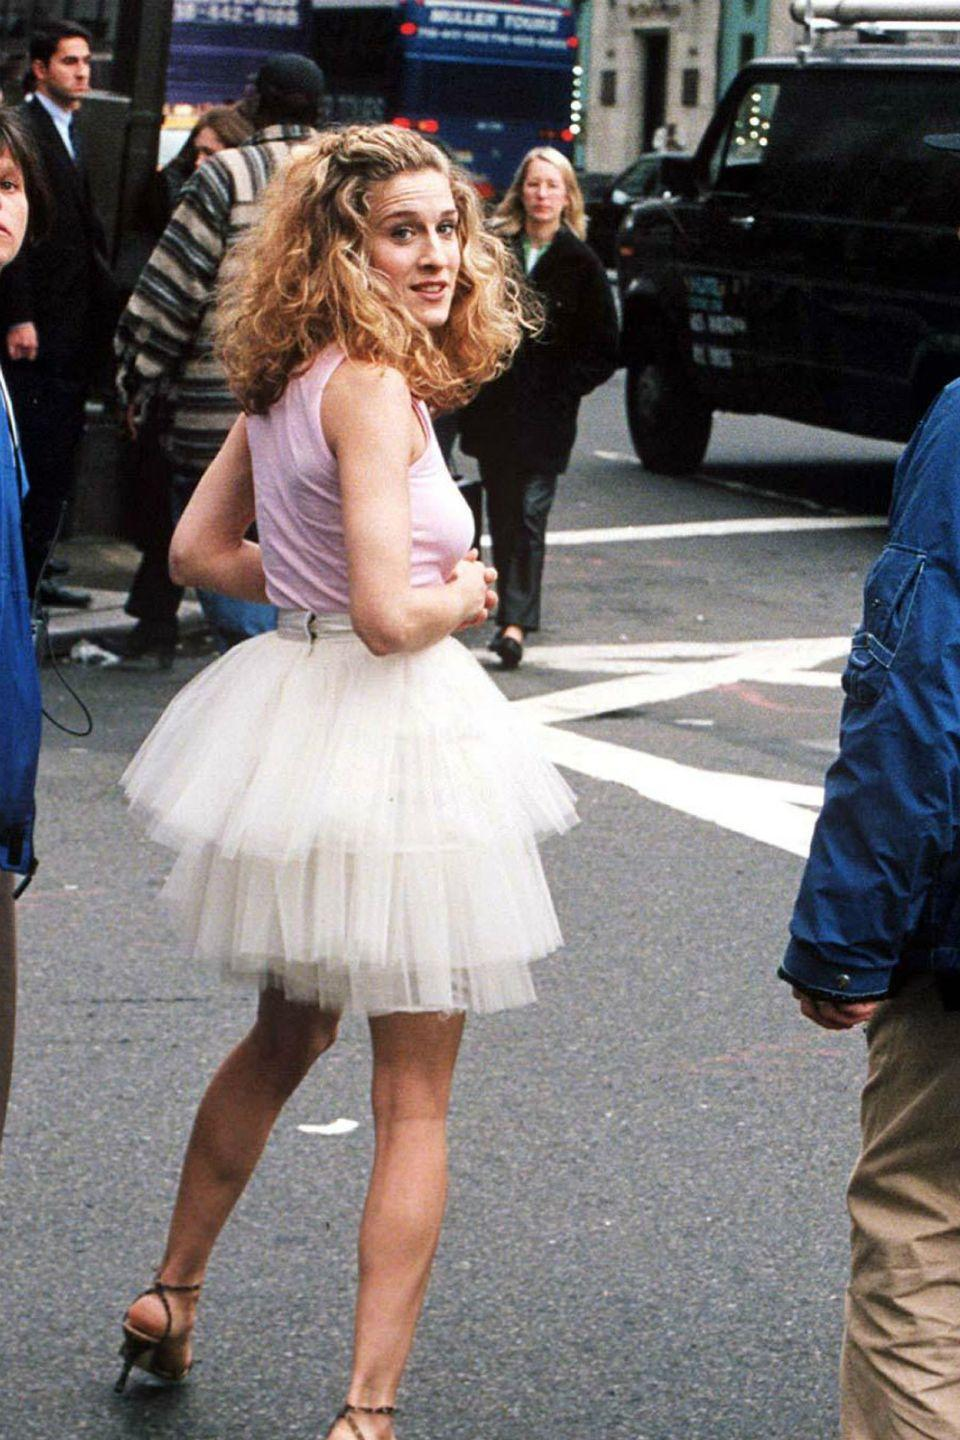 """<p>Get ahead of the up-and-coming reboot of every fashion lover's favorite series by dressing the part. Carrie Bradshaw would be seen running from event to event in Manolos and a tulle skirt. Stealing her look will make for a stylish moment.</p><p><strong>Get the look: Rodarte </strong>tiered polka-dot tulle skirt, $858, <a href=""""https://go.redirectingat.com?id=74968X1596630&url=https%3A%2F%2Fwww.matchesfashion.com%2Fproducts%2F1342477&sref=https%3A%2F%2Fwww.harpersbazaar.com%2Ffashion%2Ftrends%2Fg2339%2Ffashionable-halloween-costume-ideas%2F"""" rel=""""nofollow noopener"""" target=""""_blank"""" data-ylk=""""slk:matchesfashion.com"""" class=""""link rapid-noclick-resp"""">matchesfashion.com</a>.</p><p><a class=""""link rapid-noclick-resp"""" href=""""https://go.redirectingat.com?id=74968X1596630&url=https%3A%2F%2Fwww.matchesfashion.com%2Fproducts%2F1342477%3Fcountry%3DUSA%26rffrid%3Dsem.Google.n%253Dg.cid%253D1775457755.aid%253D108882507812.k%253D.mty%253D.d%253Dc.adp%253D.cr%253D445281154933.tid%253Daud-810038201662%253Apla-293946777986.pid%253D1342477000003.ppid%253D293946777986.lpm%253D9016785.adty%253Dpla.prl%253Den%26gclid%3DCj0KCQjw5uWGBhCTARIsAL70sLID5T5Z81mMYAlVVVg0yXqCpsdymSoAwyvSMSfnpJVwObK23aJ0uTsaAvVlEALw_wcB%26gclsrc%3Daw.ds&sref=https%3A%2F%2Fwww.harpersbazaar.com%2Ffashion%2Ftrends%2Fg2339%2Ffashionable-halloween-costume-ideas%2F"""" rel=""""nofollow noopener"""" target=""""_blank"""" data-ylk=""""slk:SHOP"""">SHOP</a> <br></p>"""